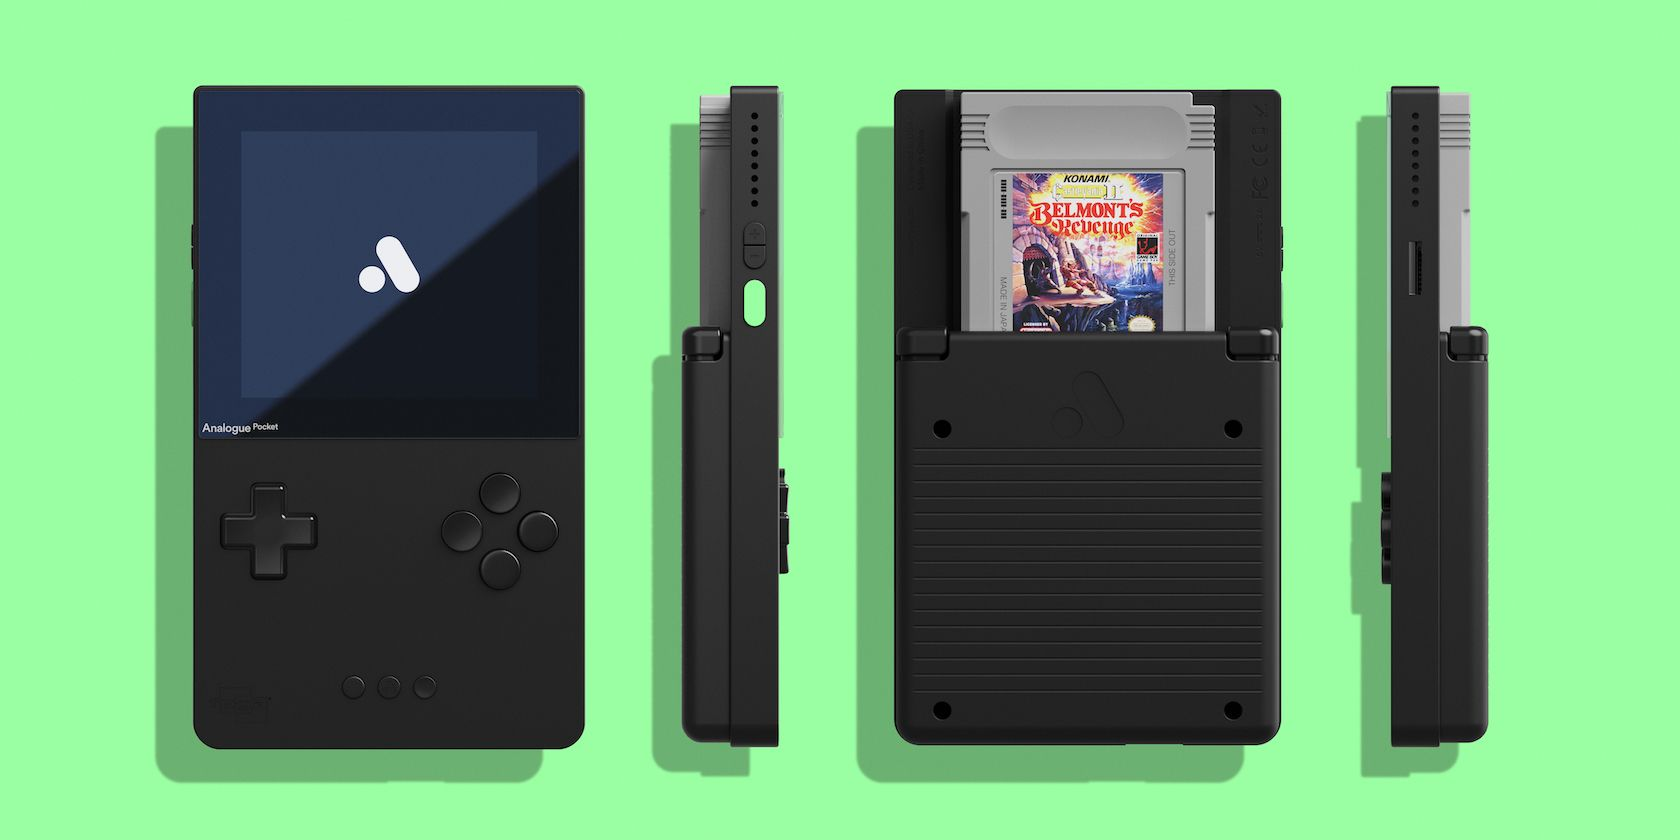 What Is the Analogue Pocket and What Games Can It Play?